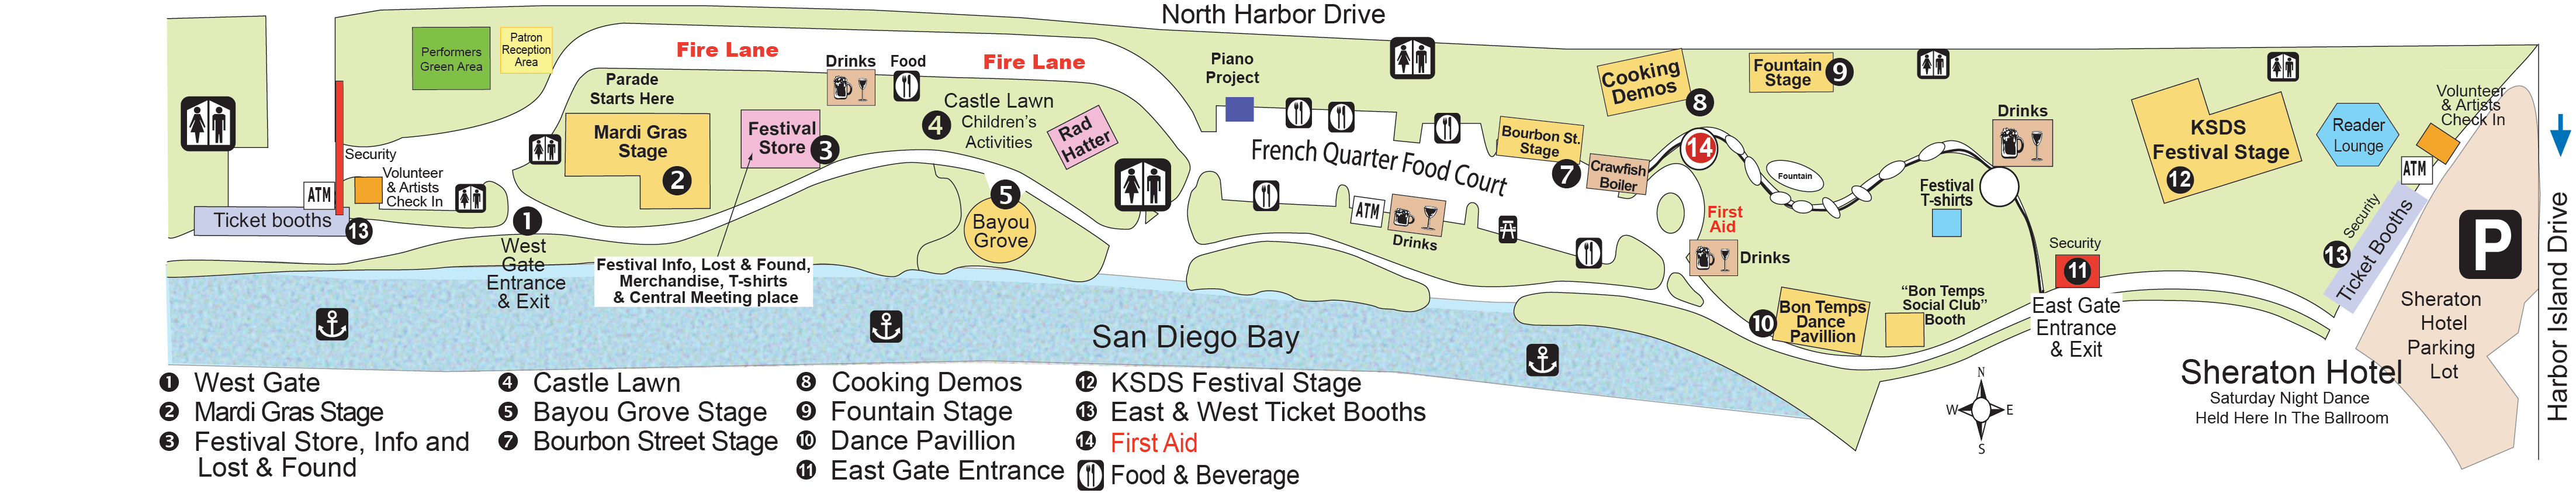 Gator By The Bay Festival Site Map